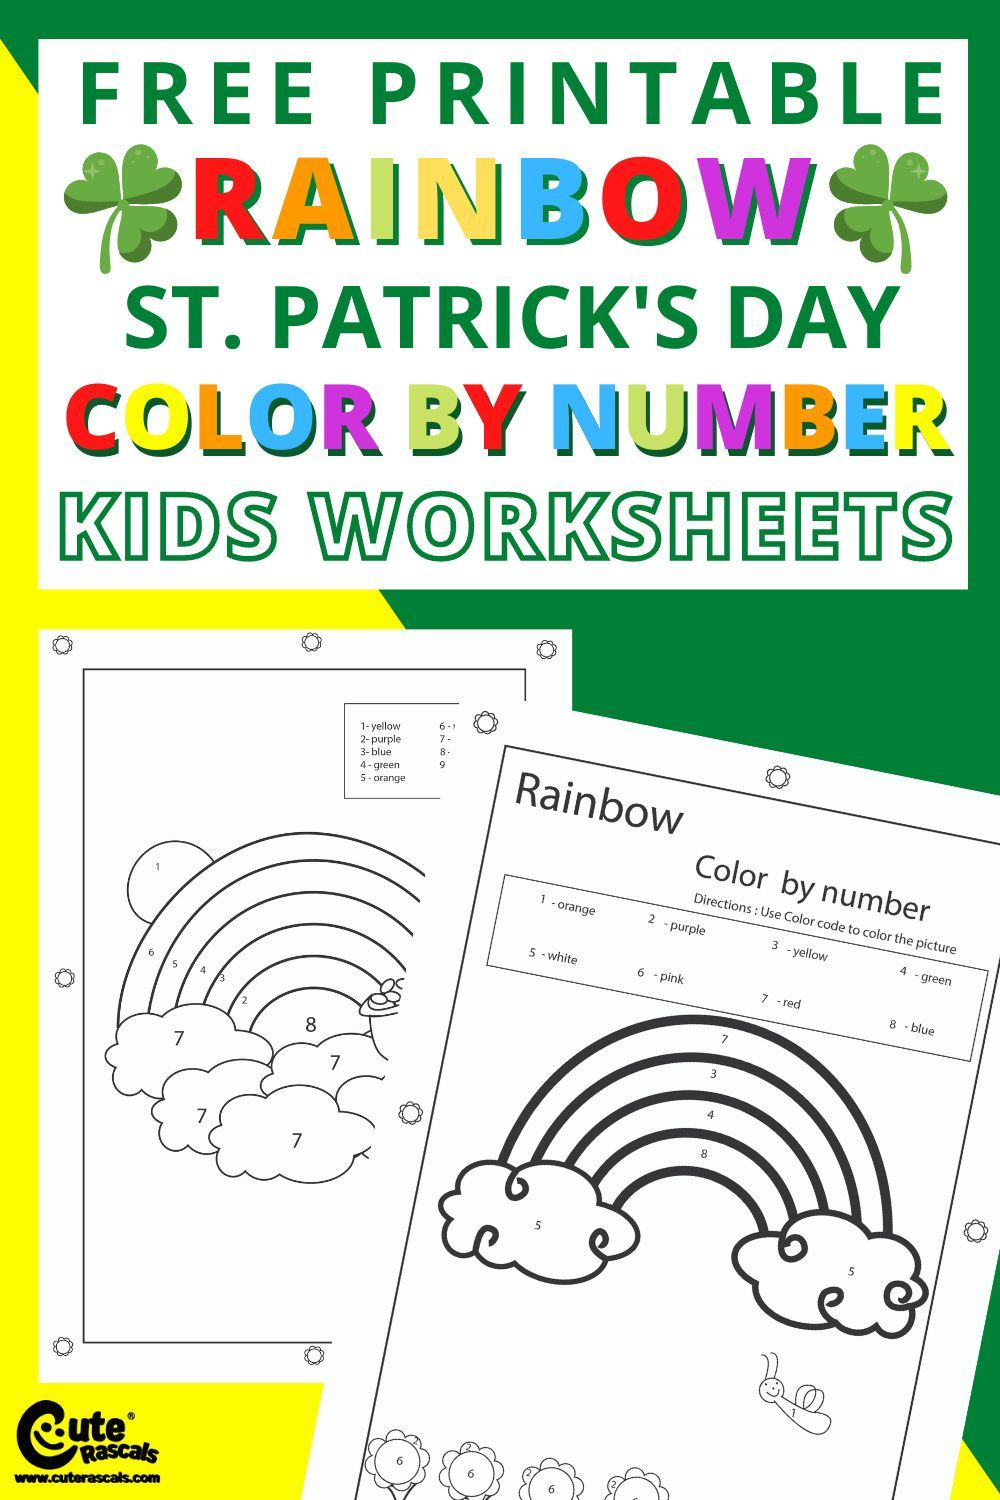 Rainbow Counting Activities For Preschoolers Montessori Math Worksheets 4 6 Year Olds In 2021 Counting Activities For Preschoolers Montessori Math Activities Preschool Activities [ 1500 x 1000 Pixel ]